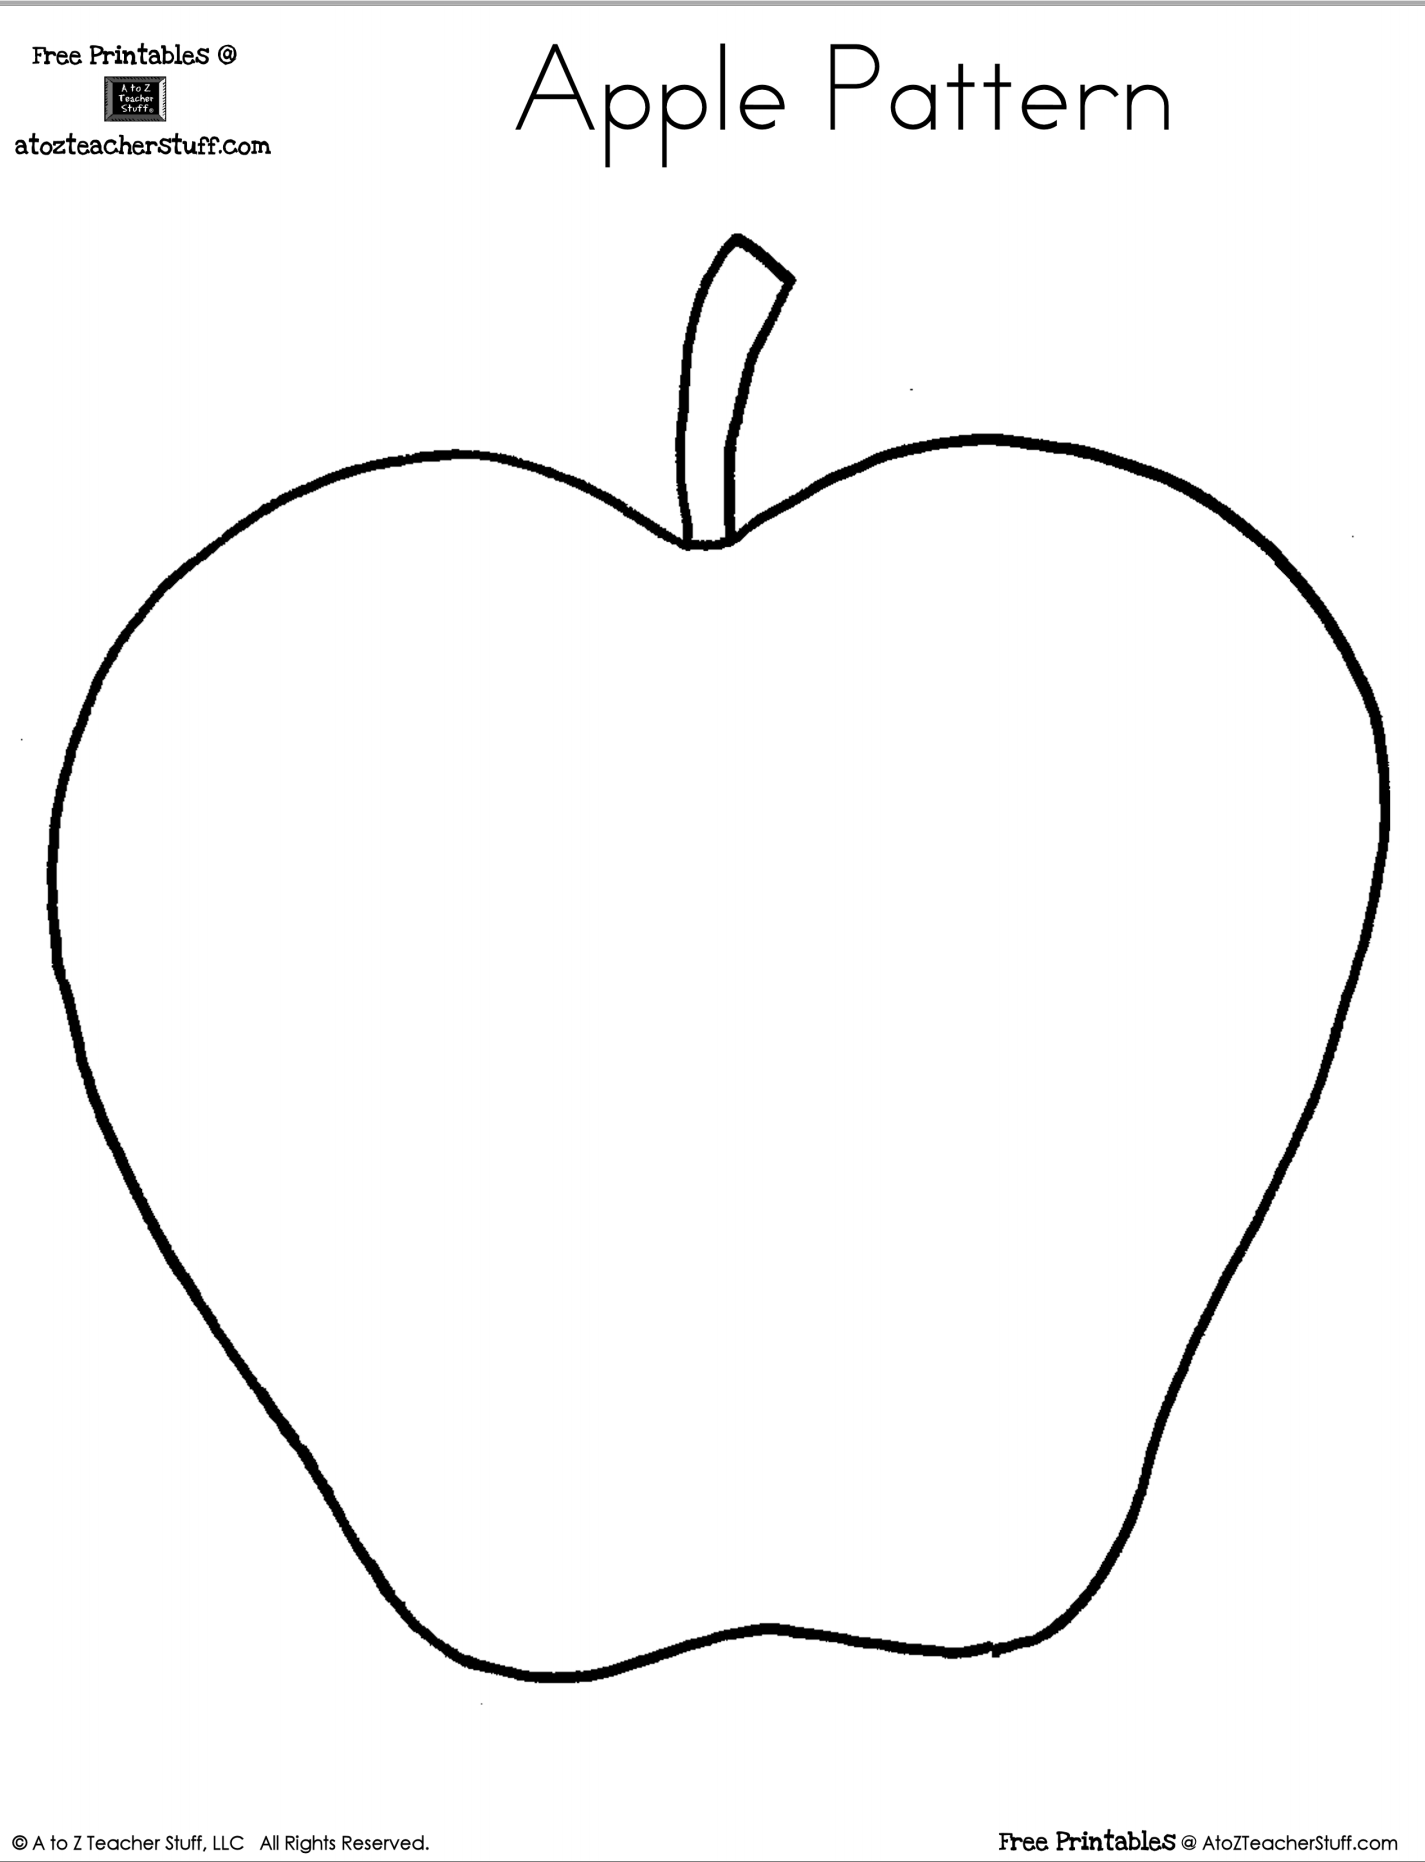 Printable Apple Pattern | A to Z Teacher Stuff Printable